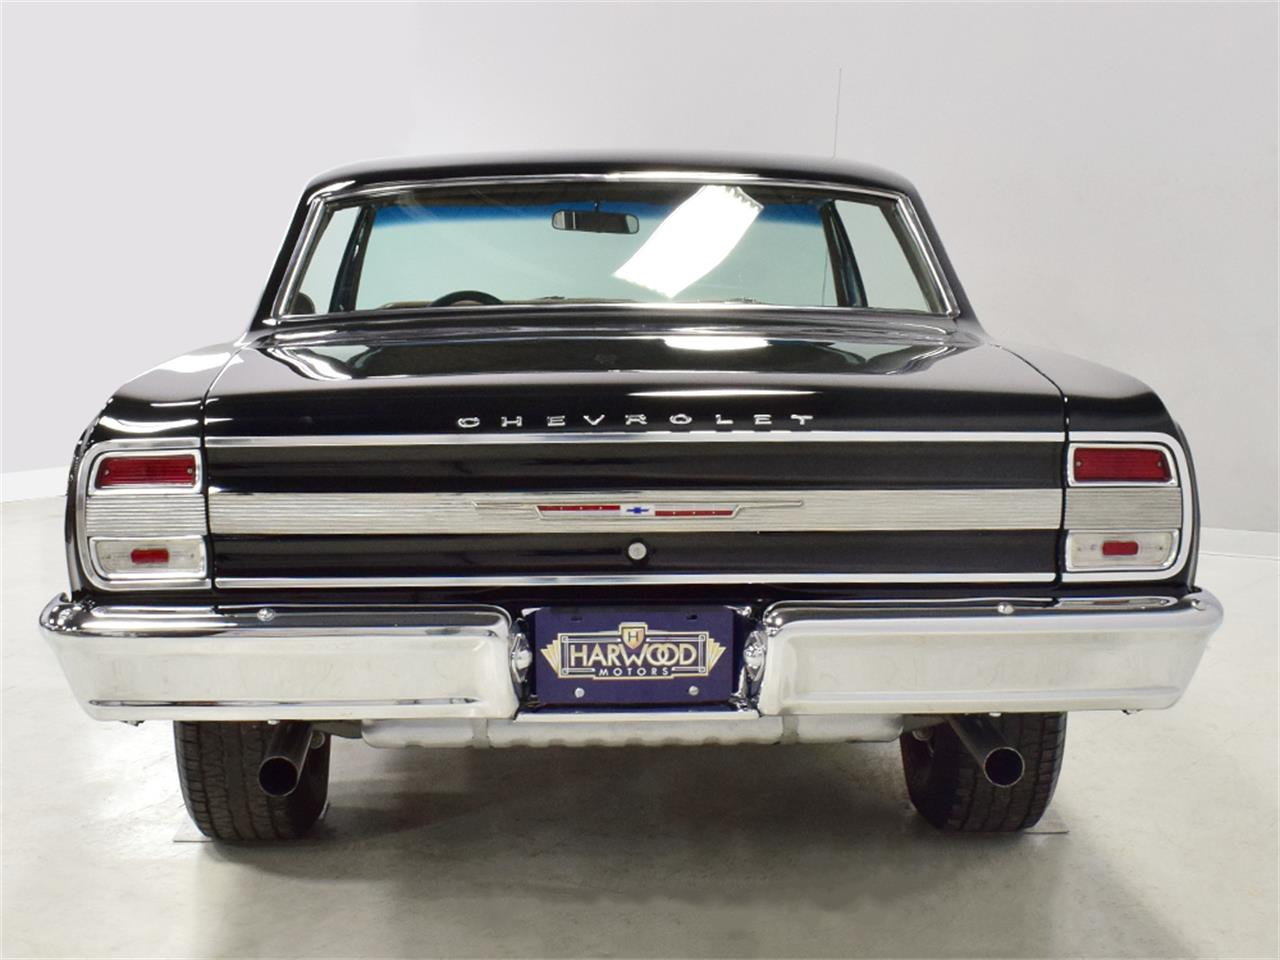 Large Picture of '64 Chevrolet Malibu located in Macedonia Ohio - $54,900.00 Offered by Harwood Motors, LTD. - PK4B